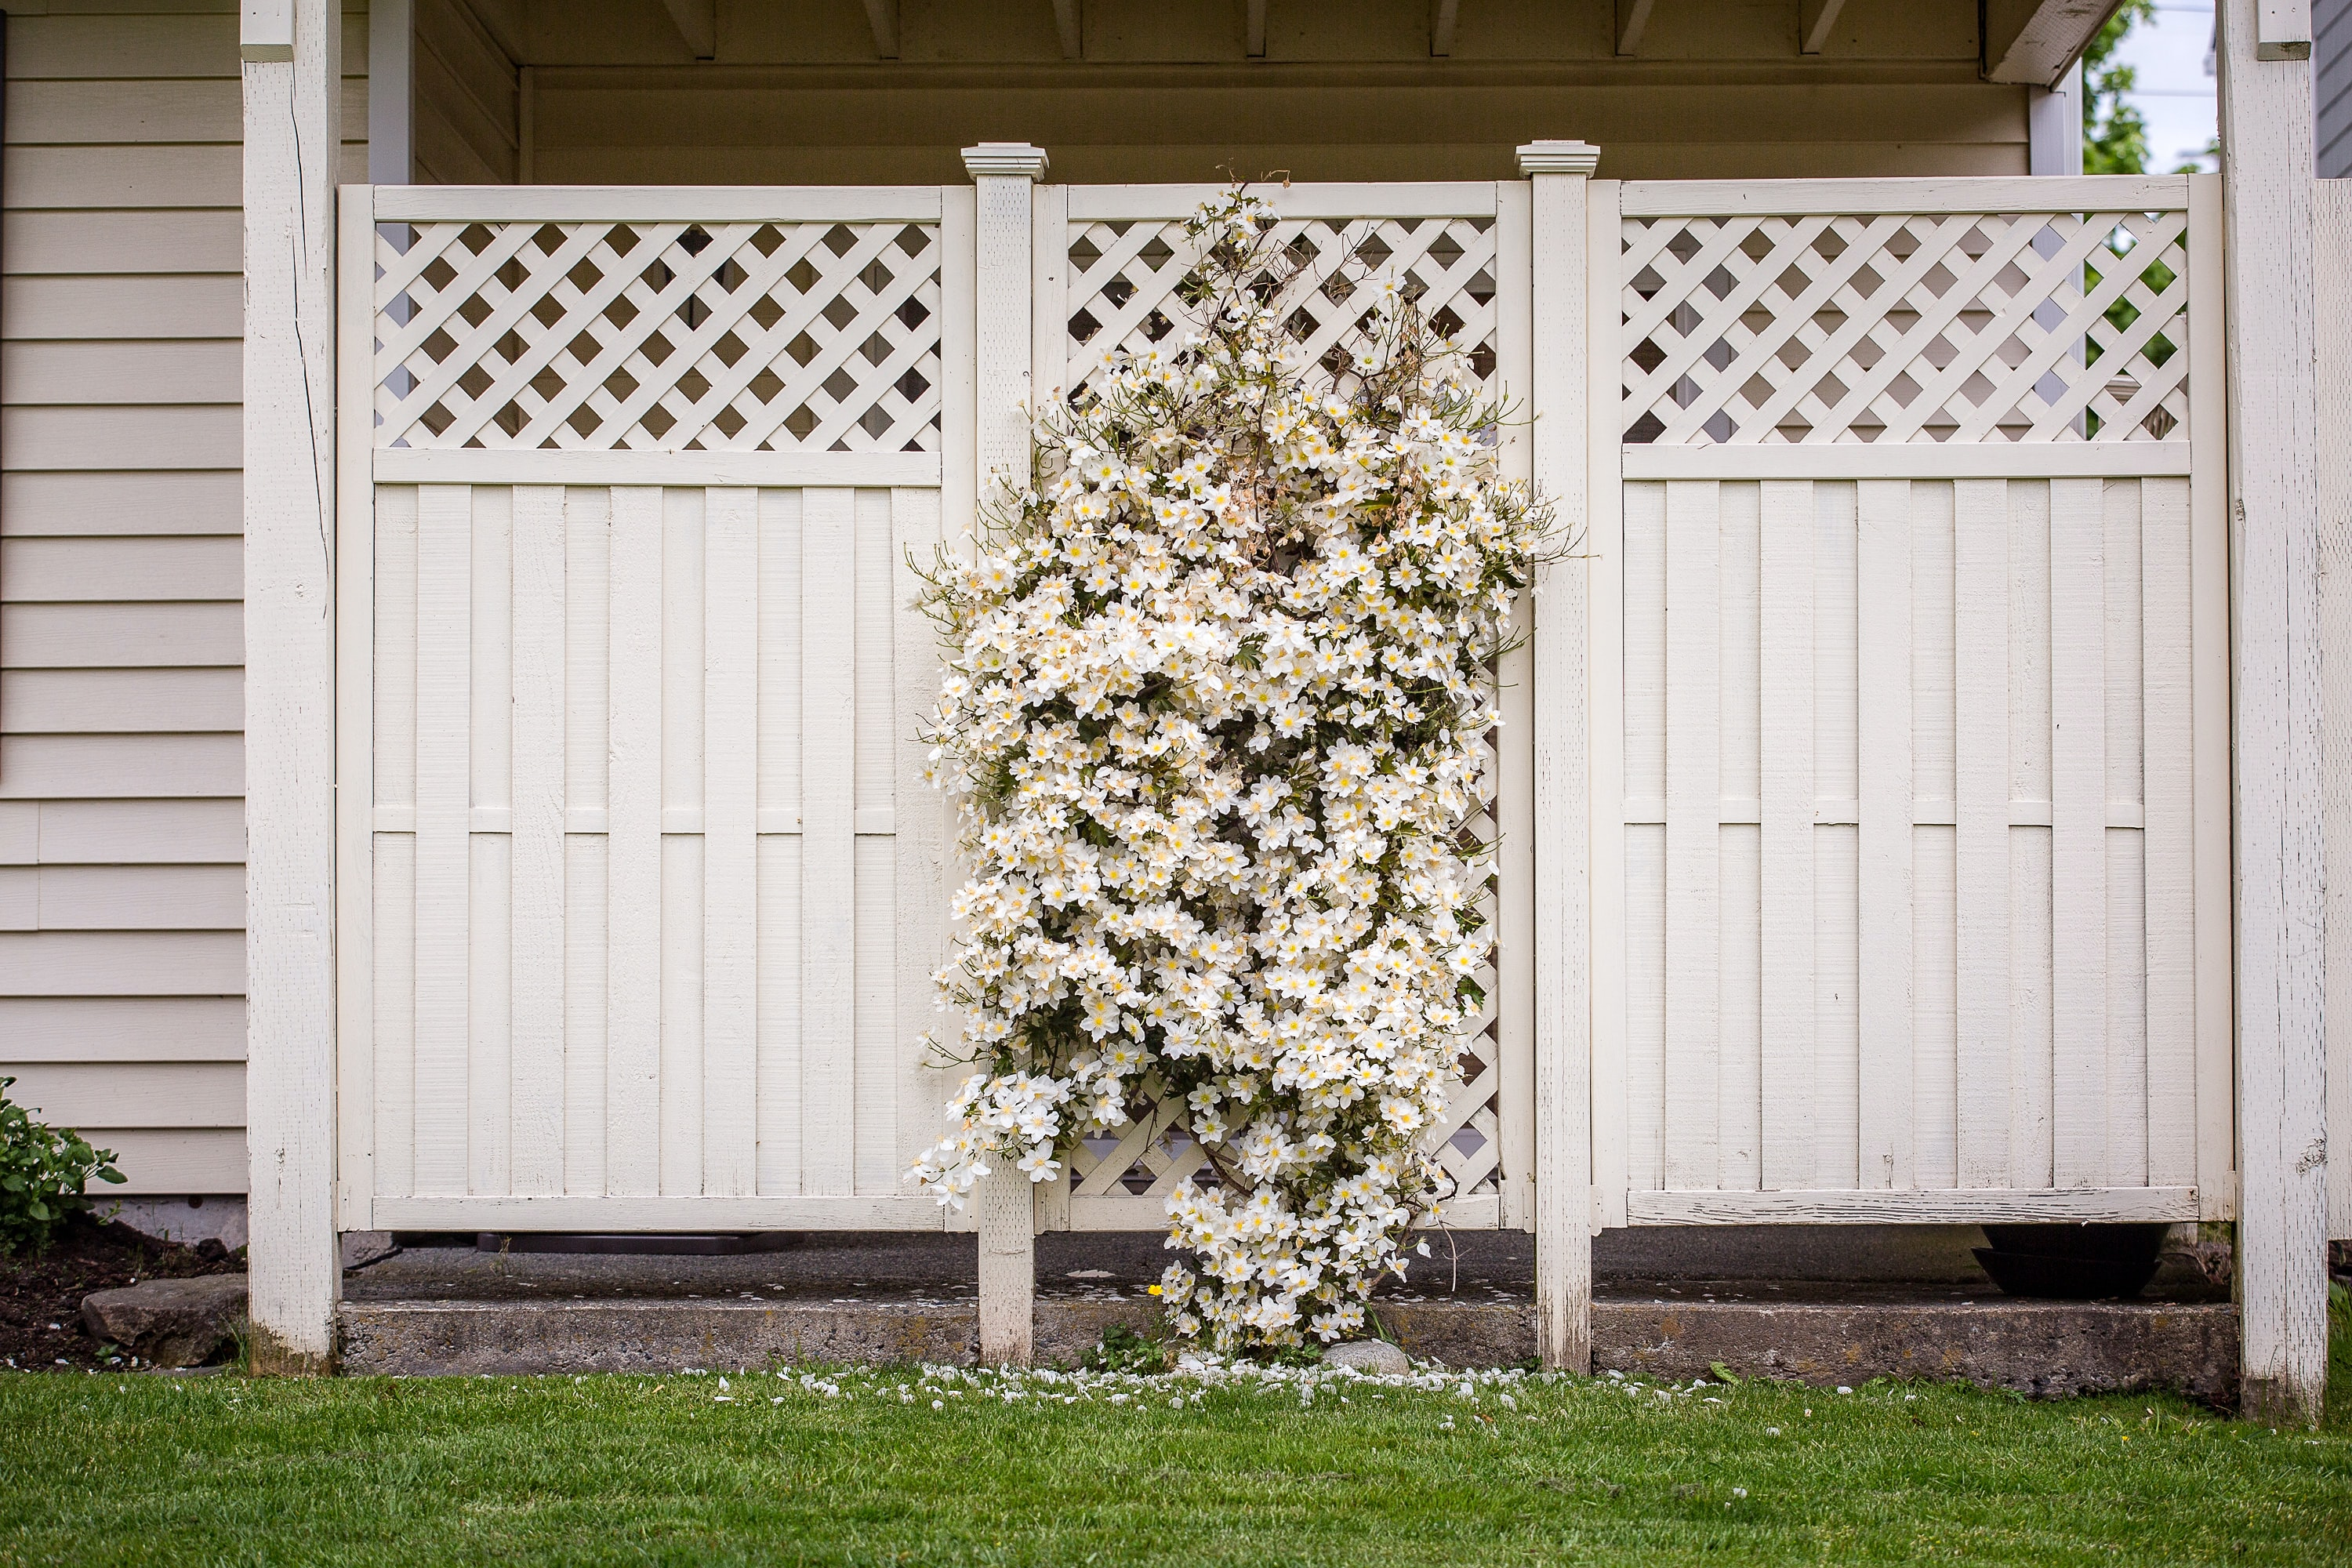 white petaled flowers mountain on wooden fence